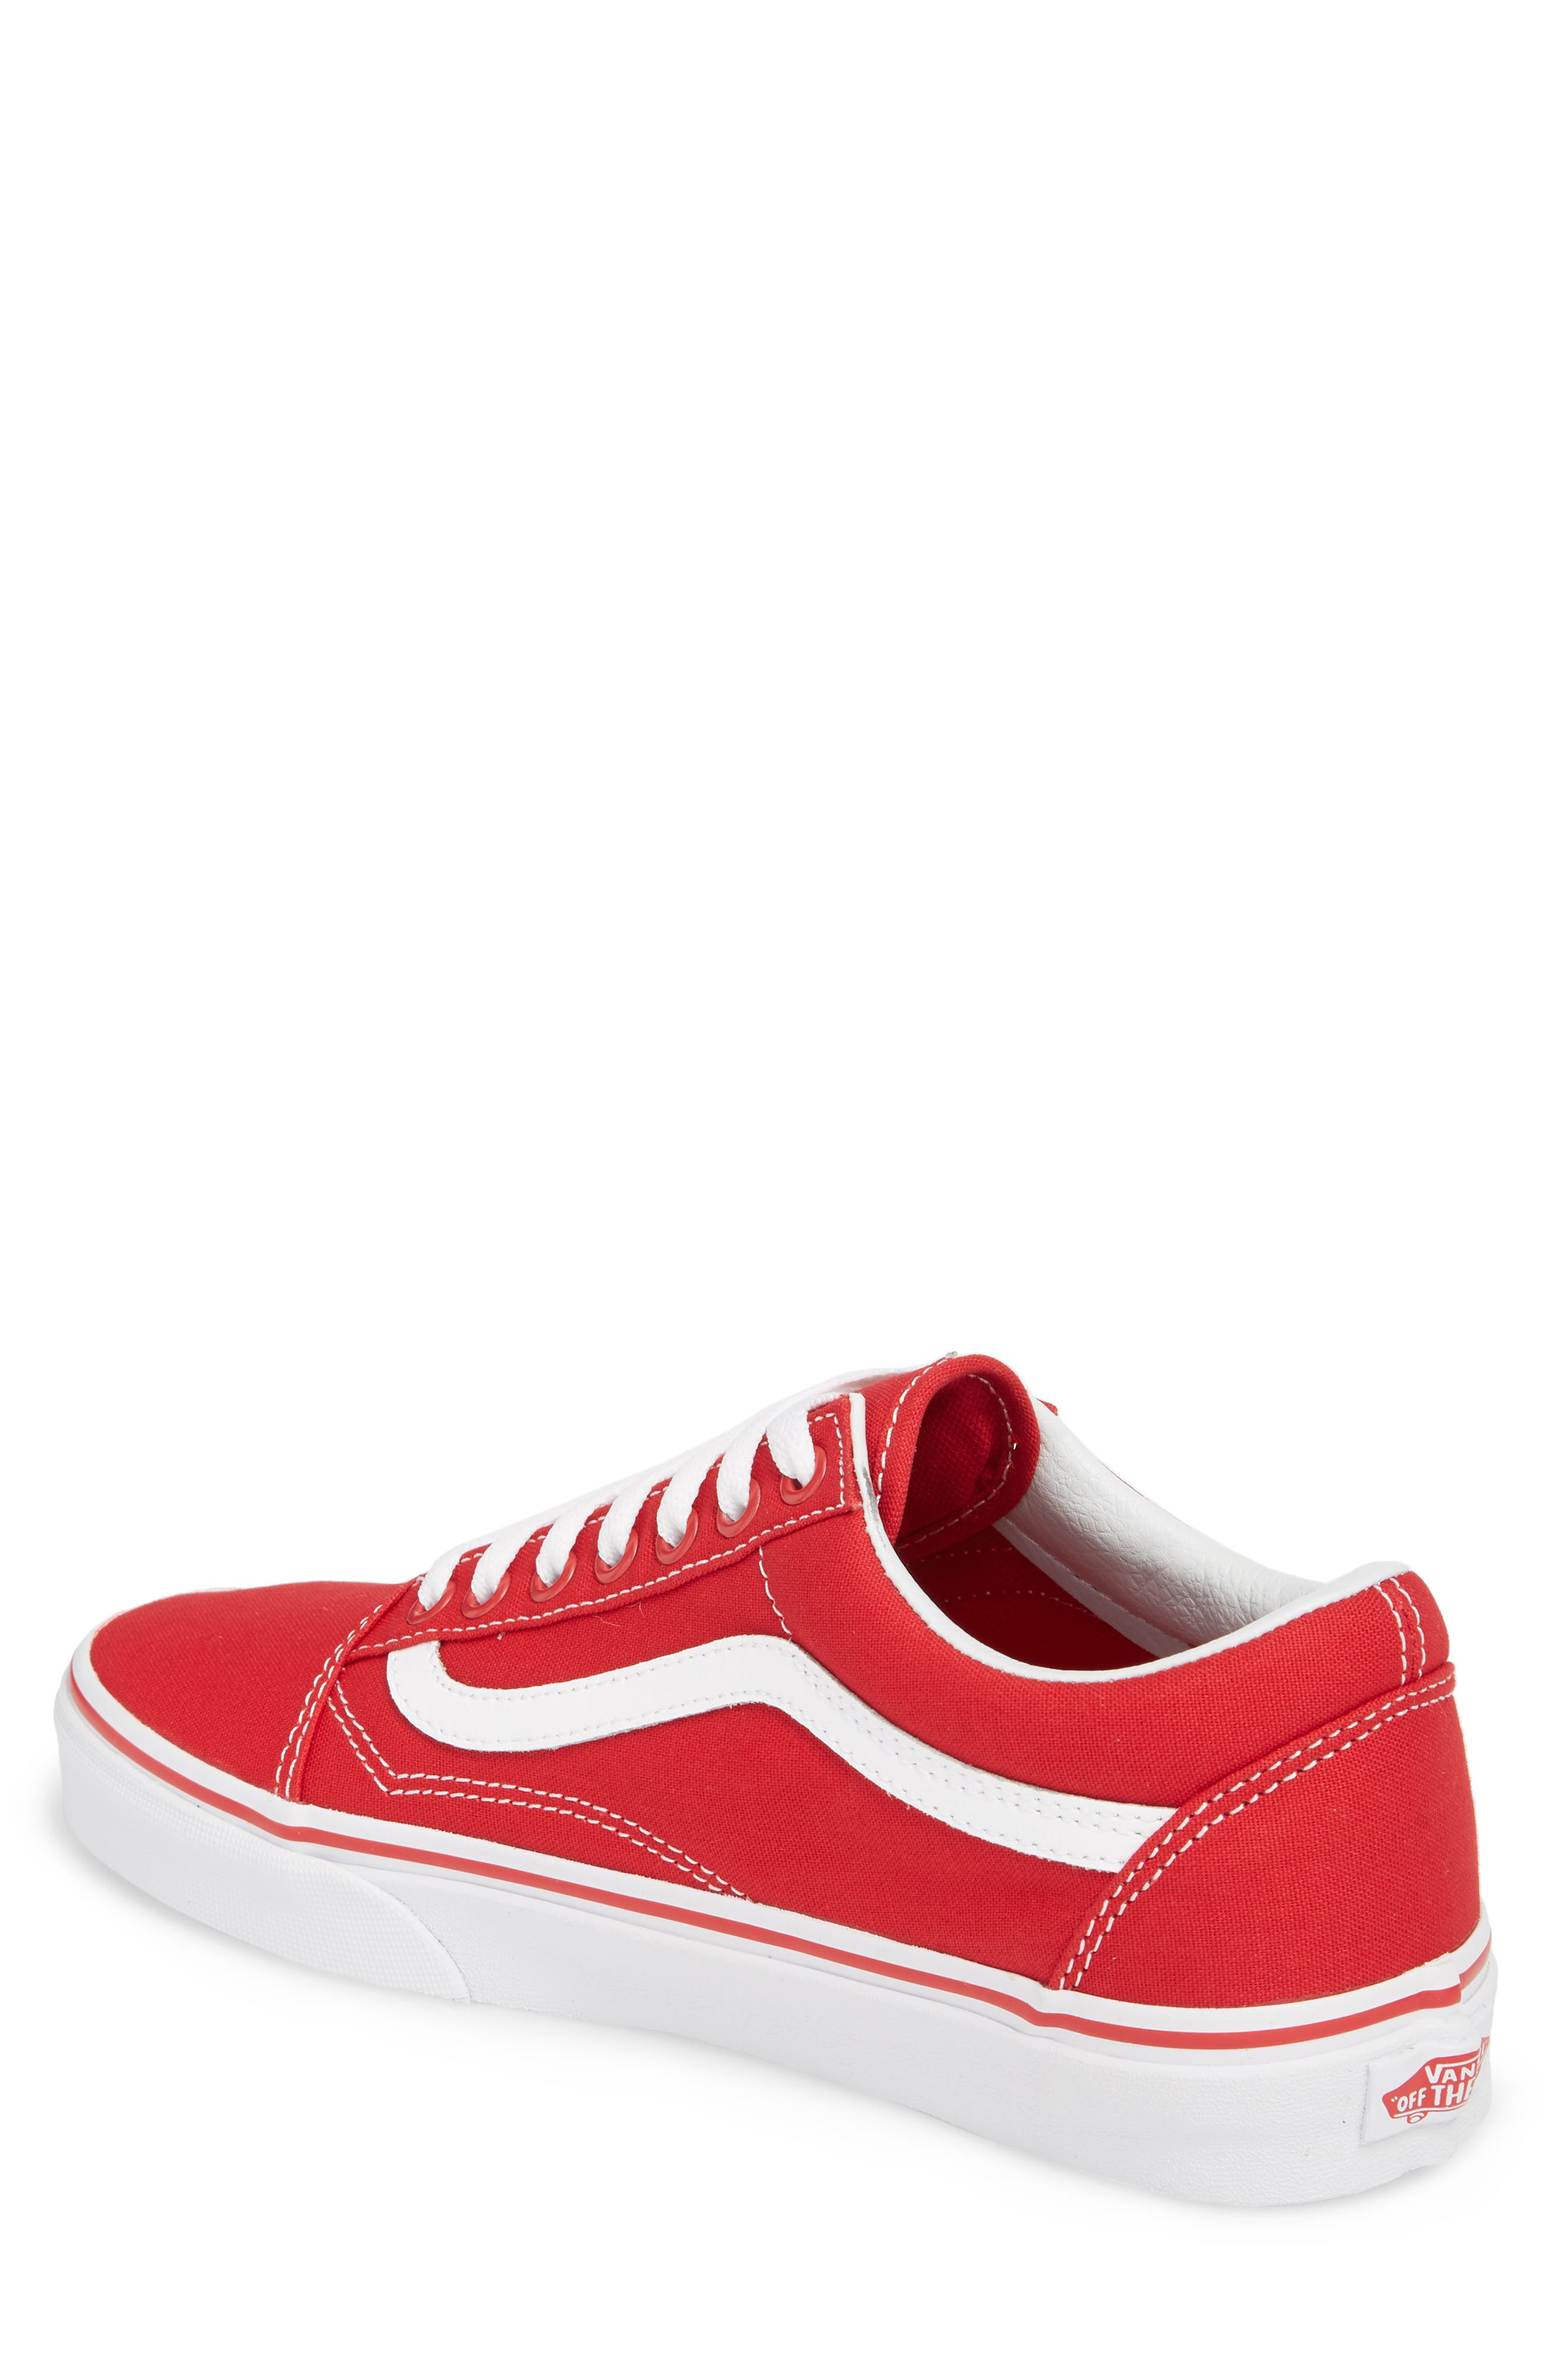 Old Skool Low Top Sneaker,                             Alternate thumbnail 2, color,                             FORMULA ONE CANVAS